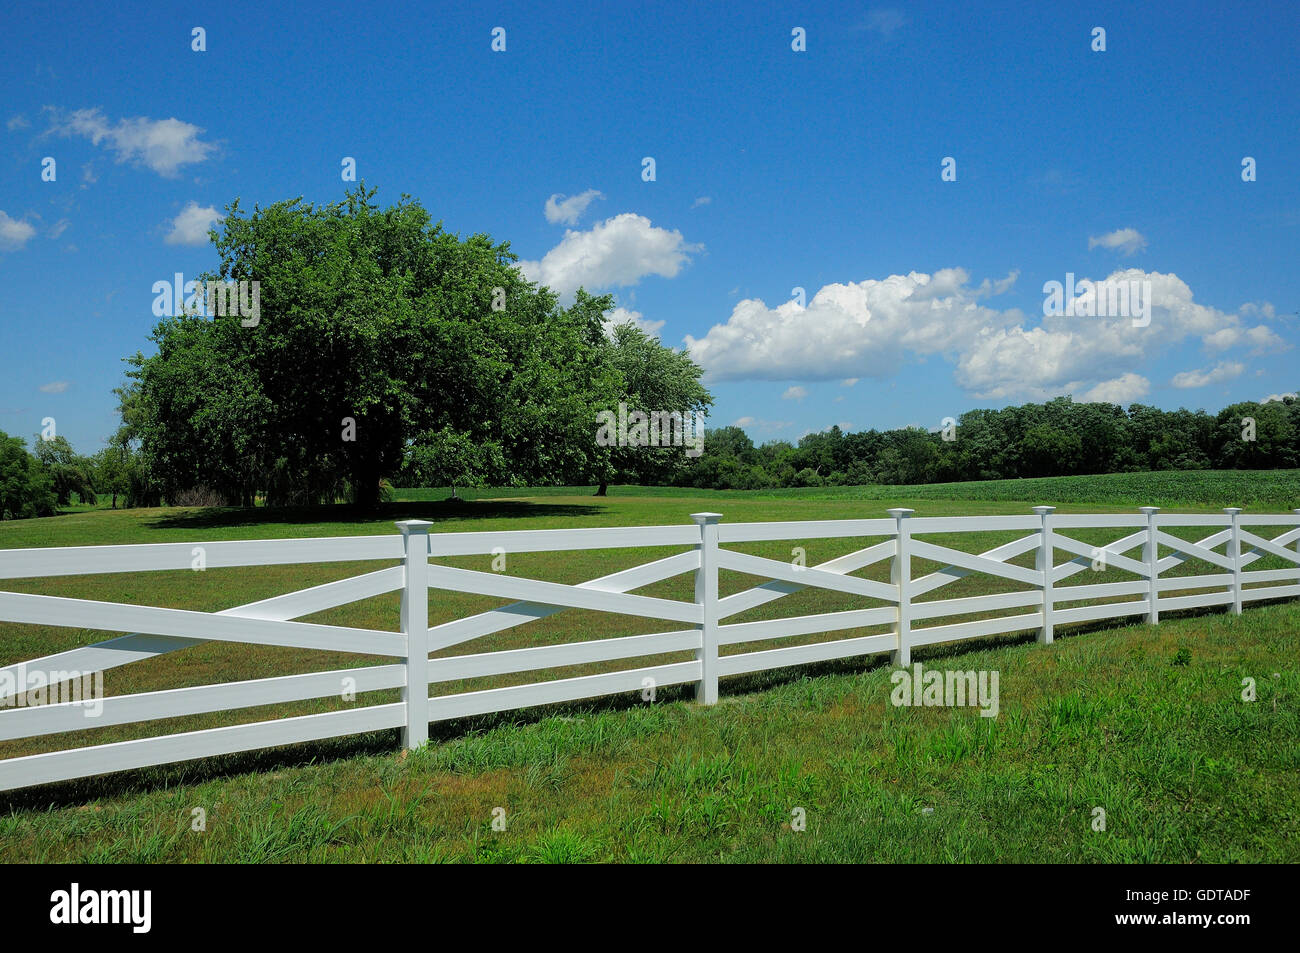 New fence line along pasture. - Stock Image